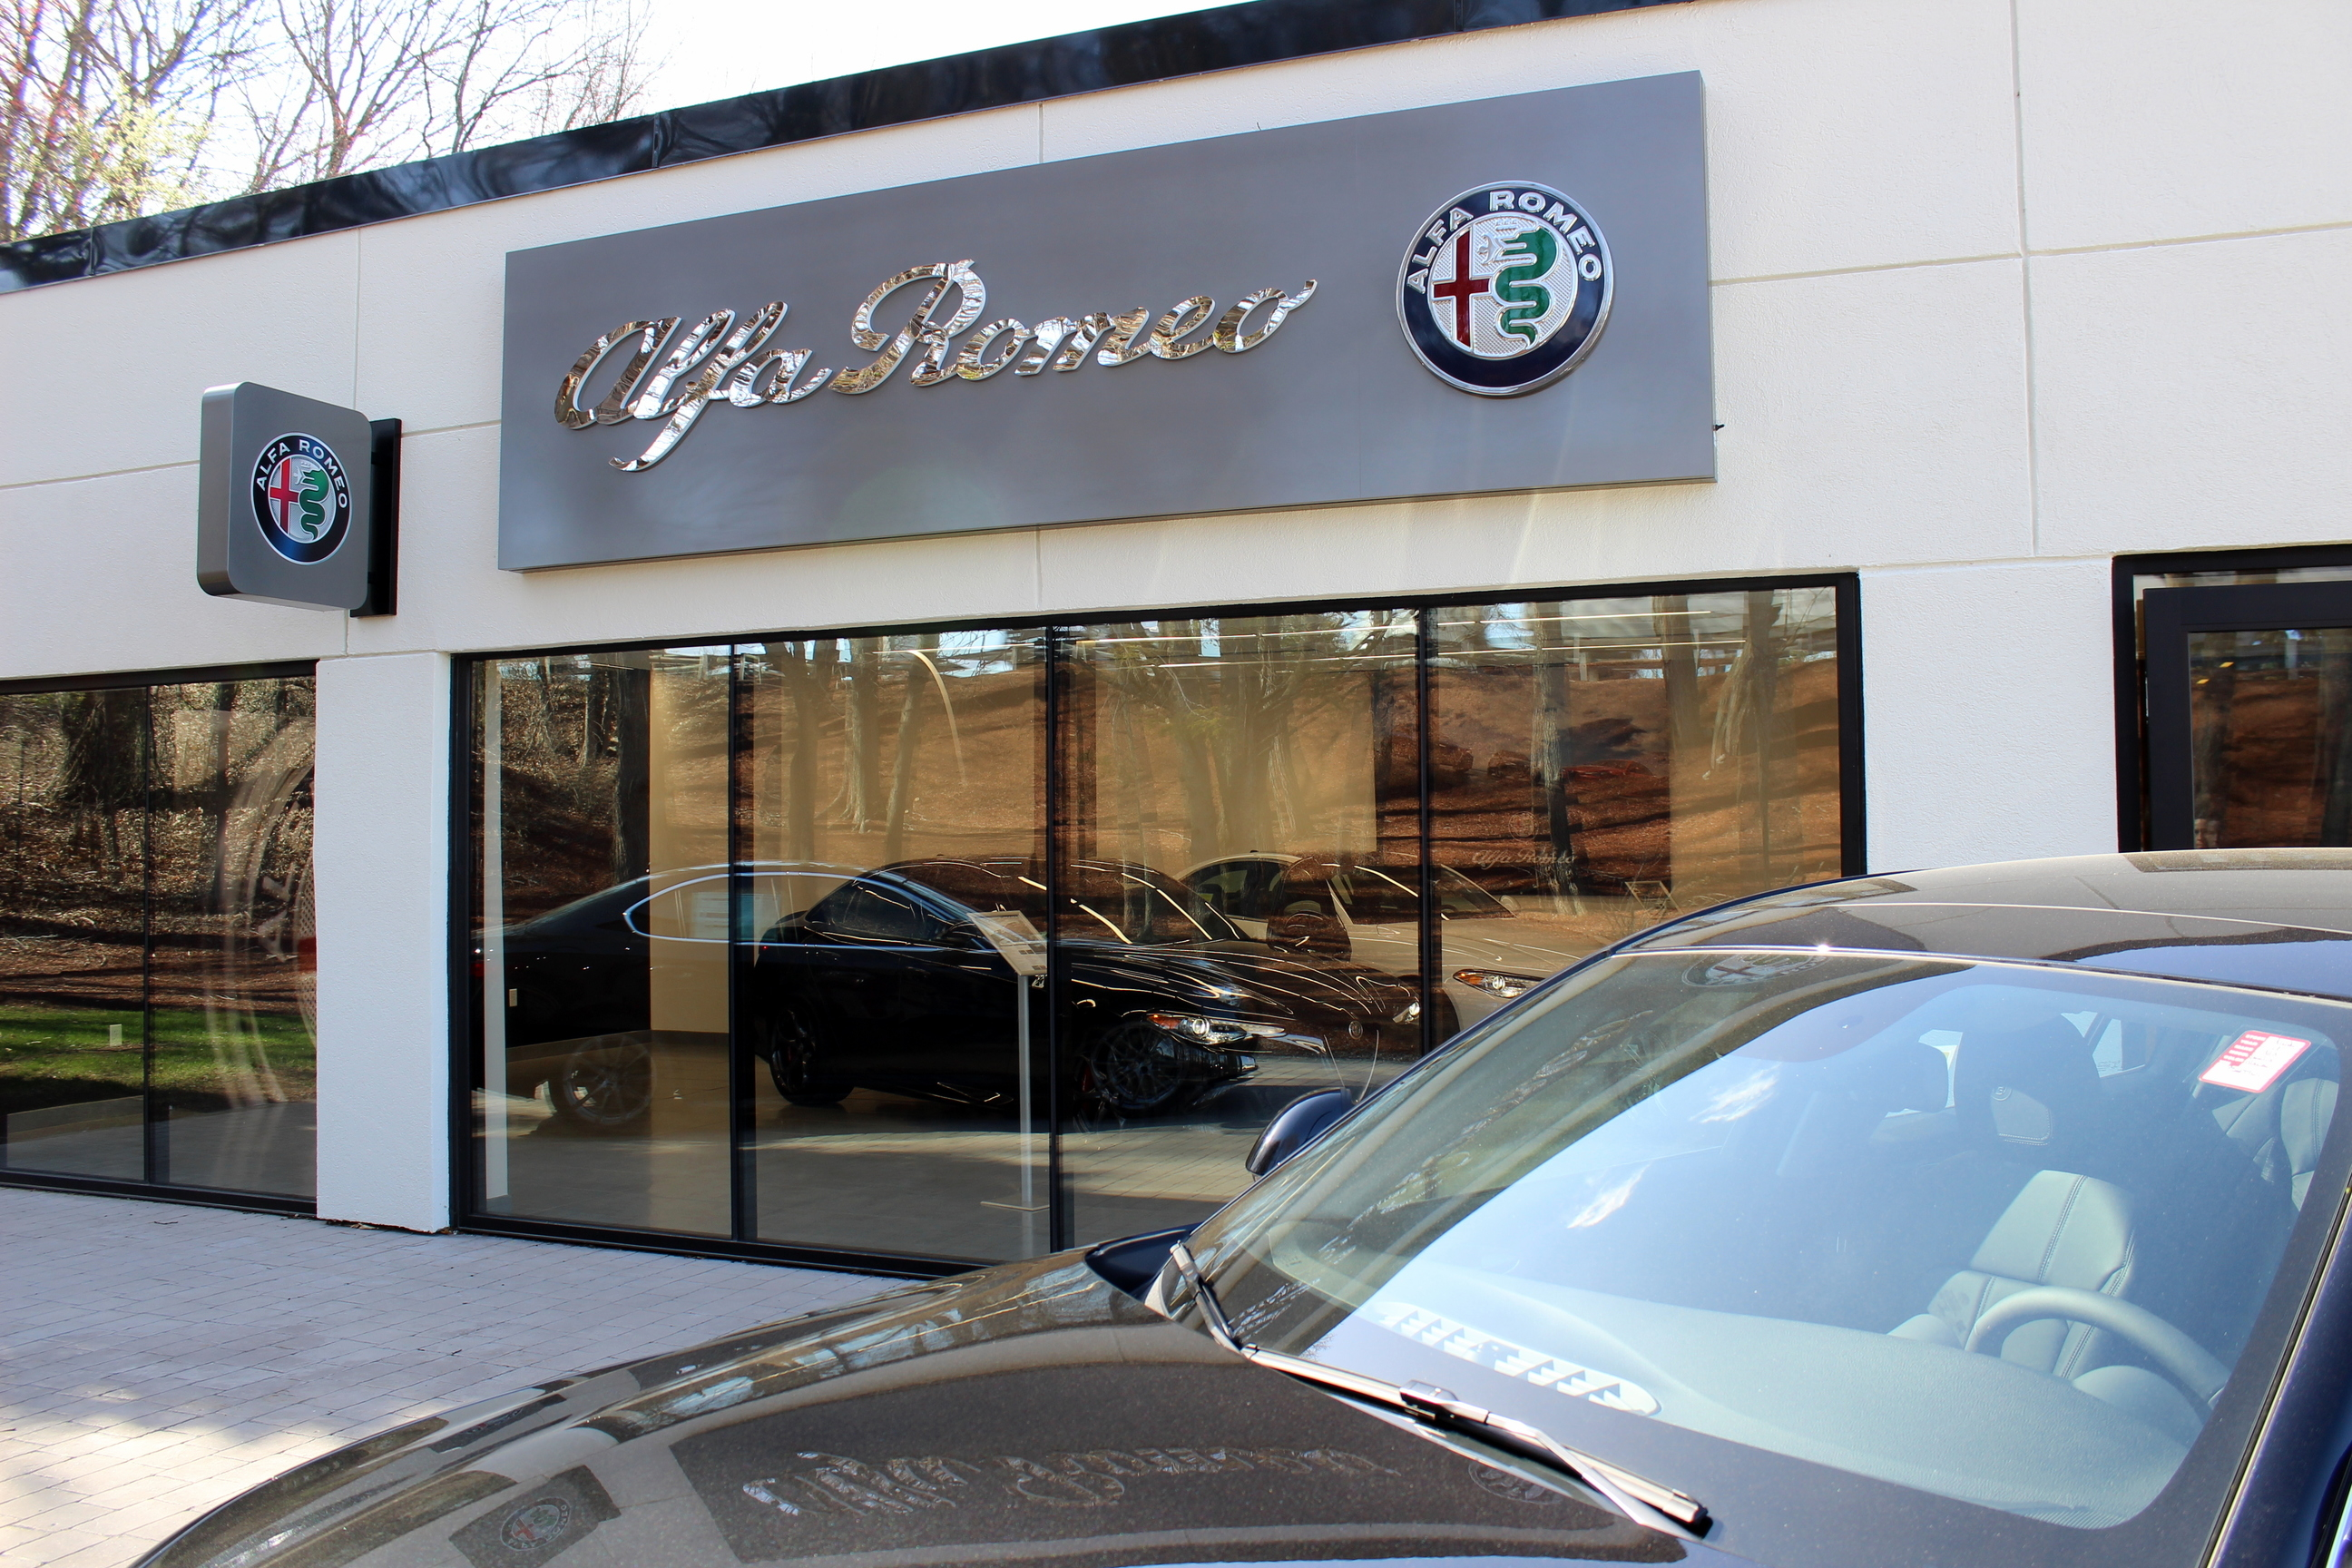 herb chambers alfa romeo boston coupons near me in wayland 8coupons. Black Bedroom Furniture Sets. Home Design Ideas